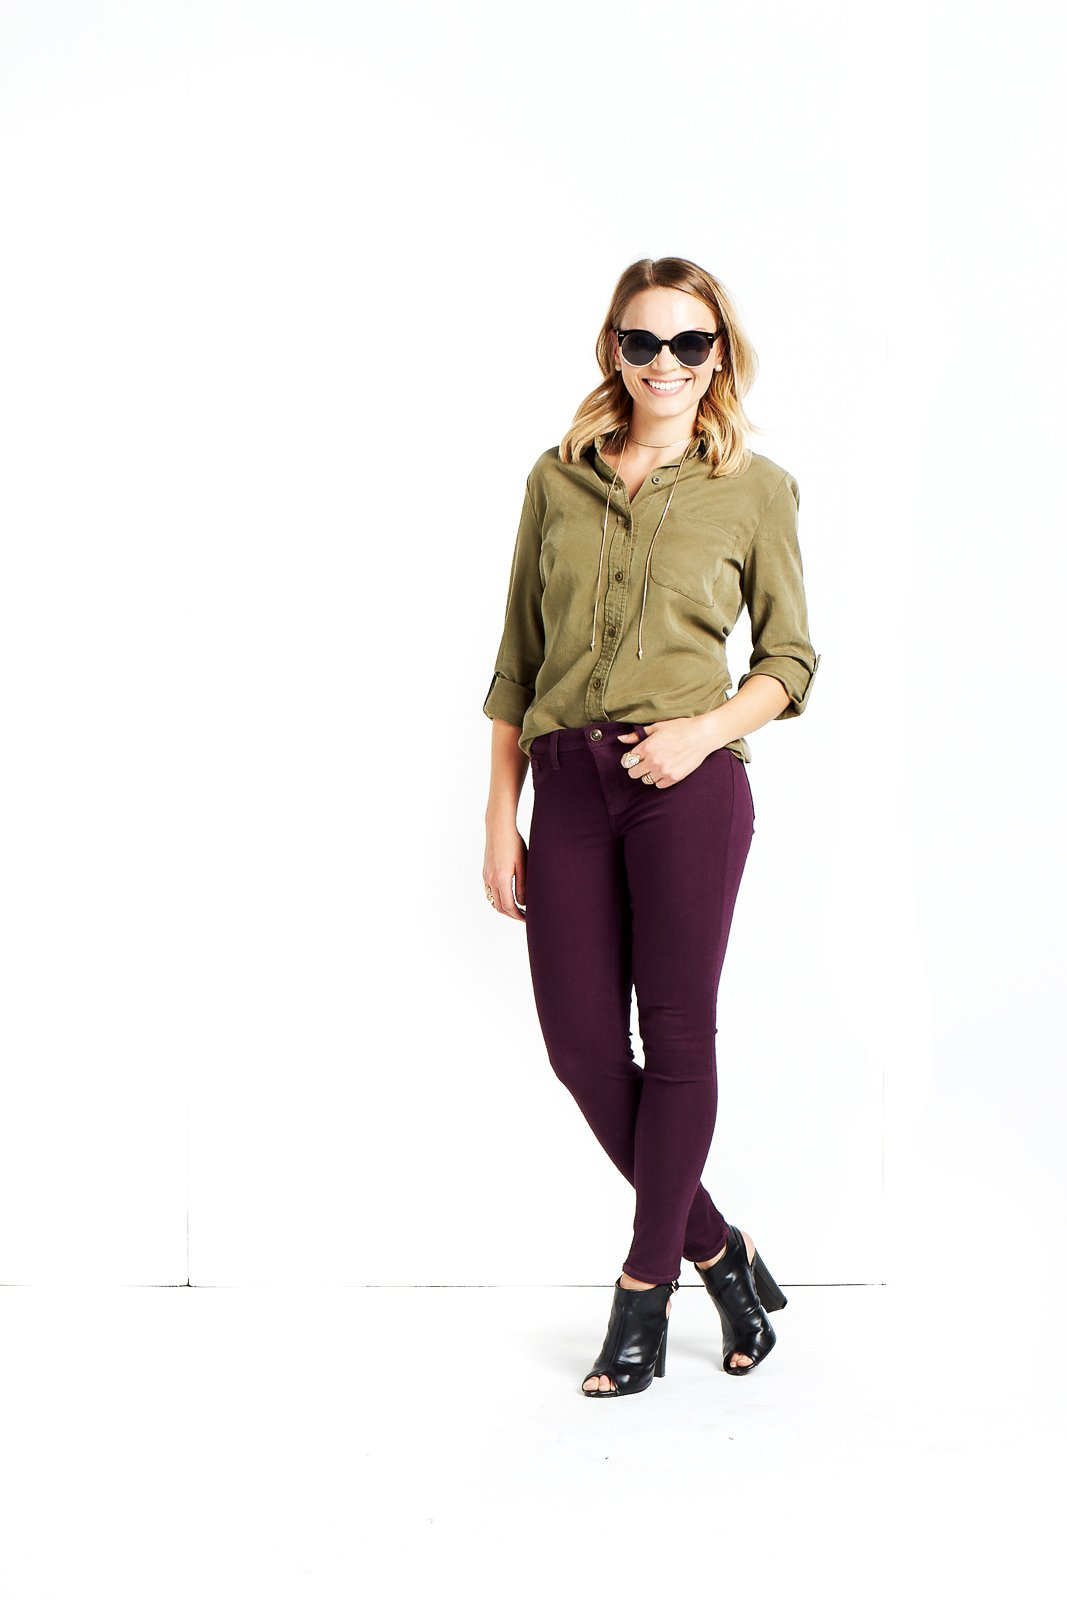 Military is super trendy right now! Try picking up a green button up and pair it with something fun like colorful or distressed jeans!